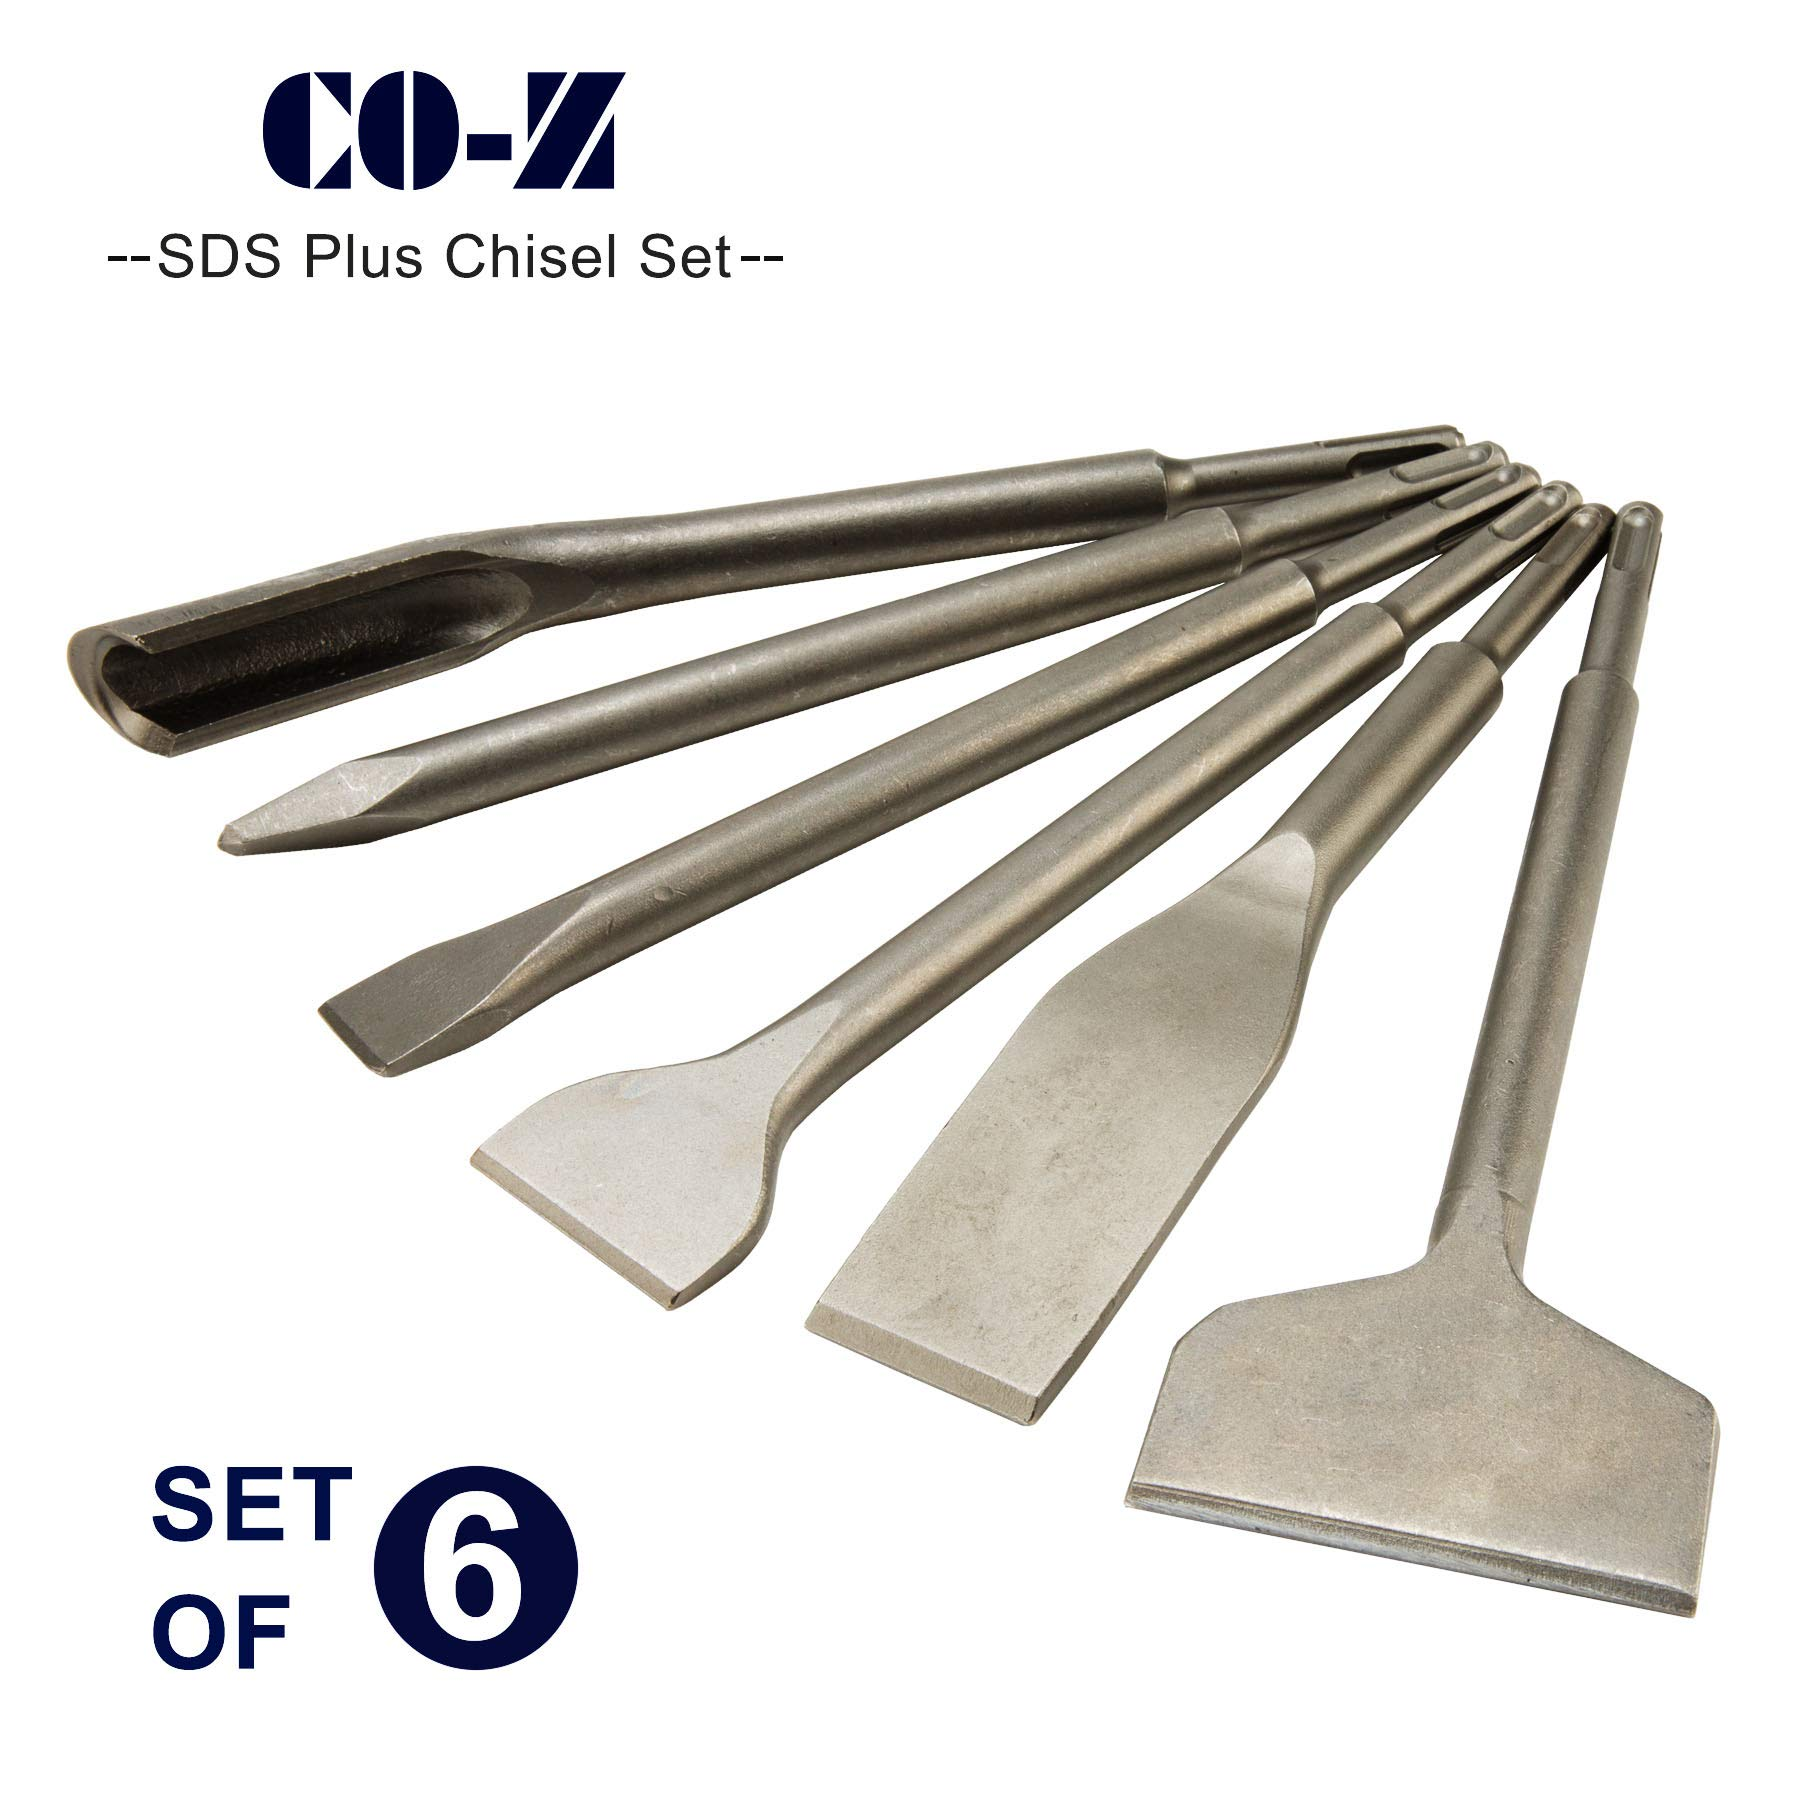 CO-Z SDS Plus Hammer Drill Chisel Set, Rotary Hammer SDS Bits Set 6pcs Including Tile Chisel, Gouge Chisel, Wide Chisel x 2, Flat Chisel, Point Chisel. by CO-Z (Image #6)